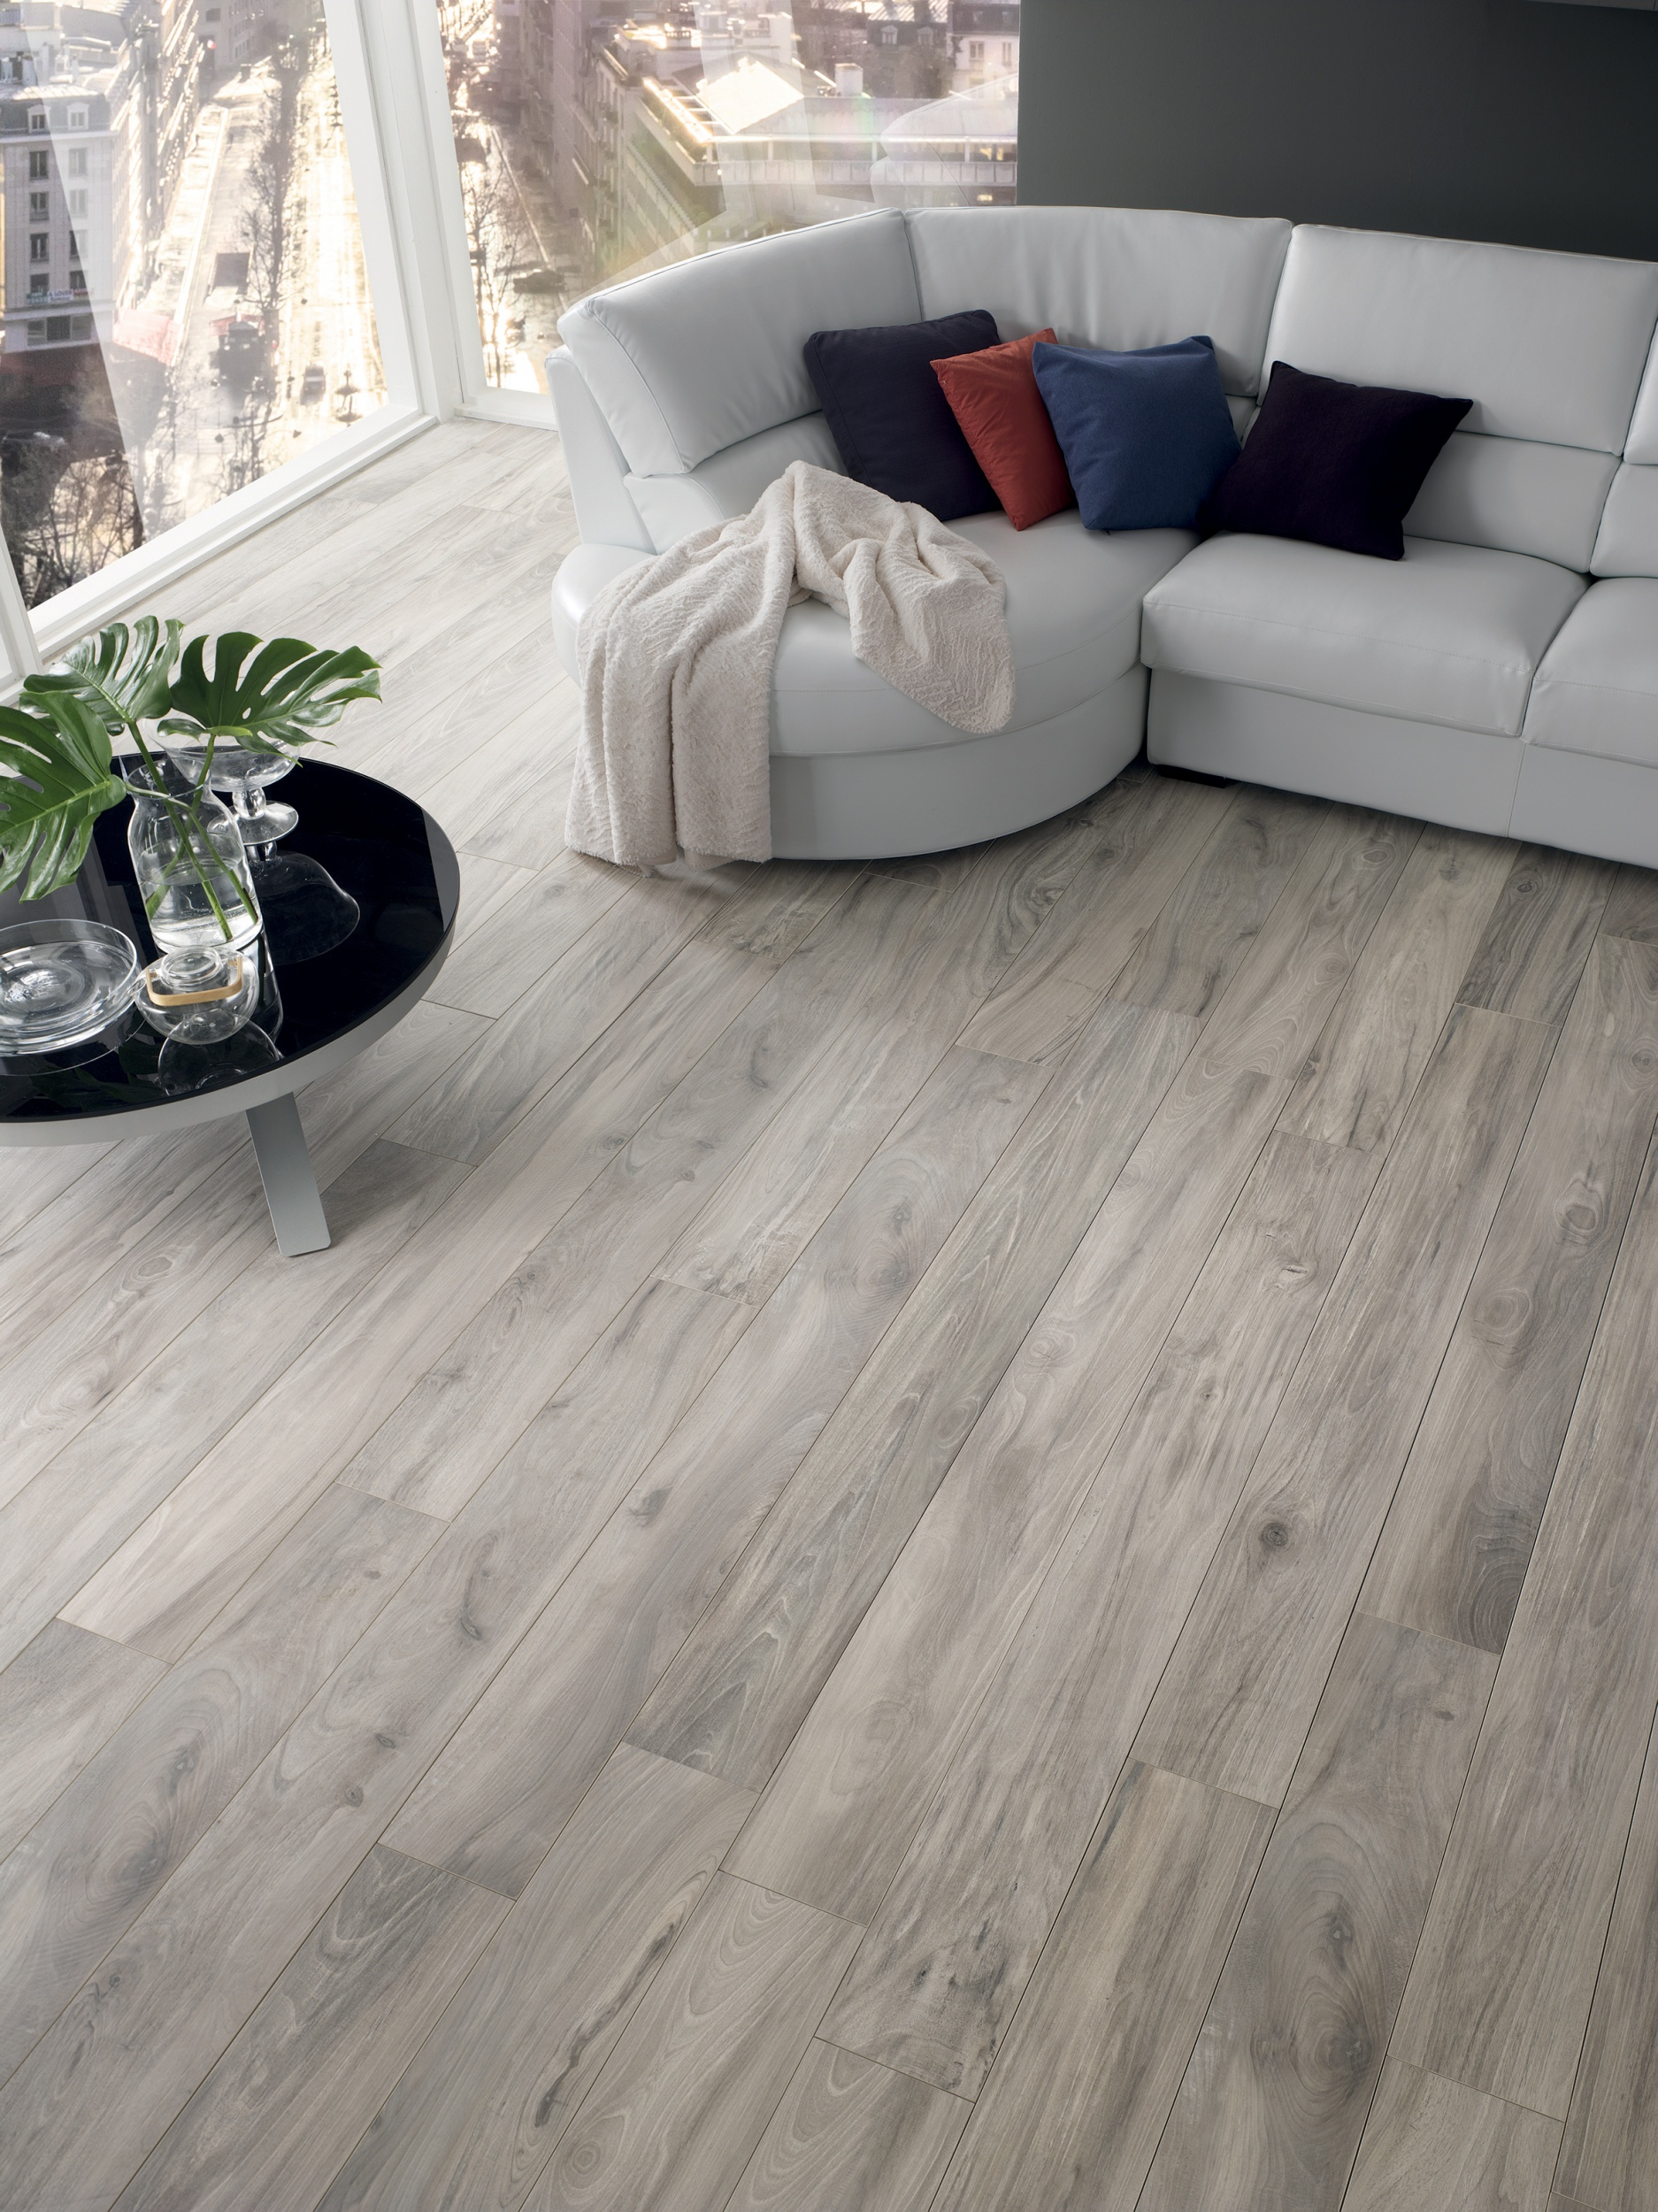 Introducing Essenza A New Wood Effect Porcelain Tile From